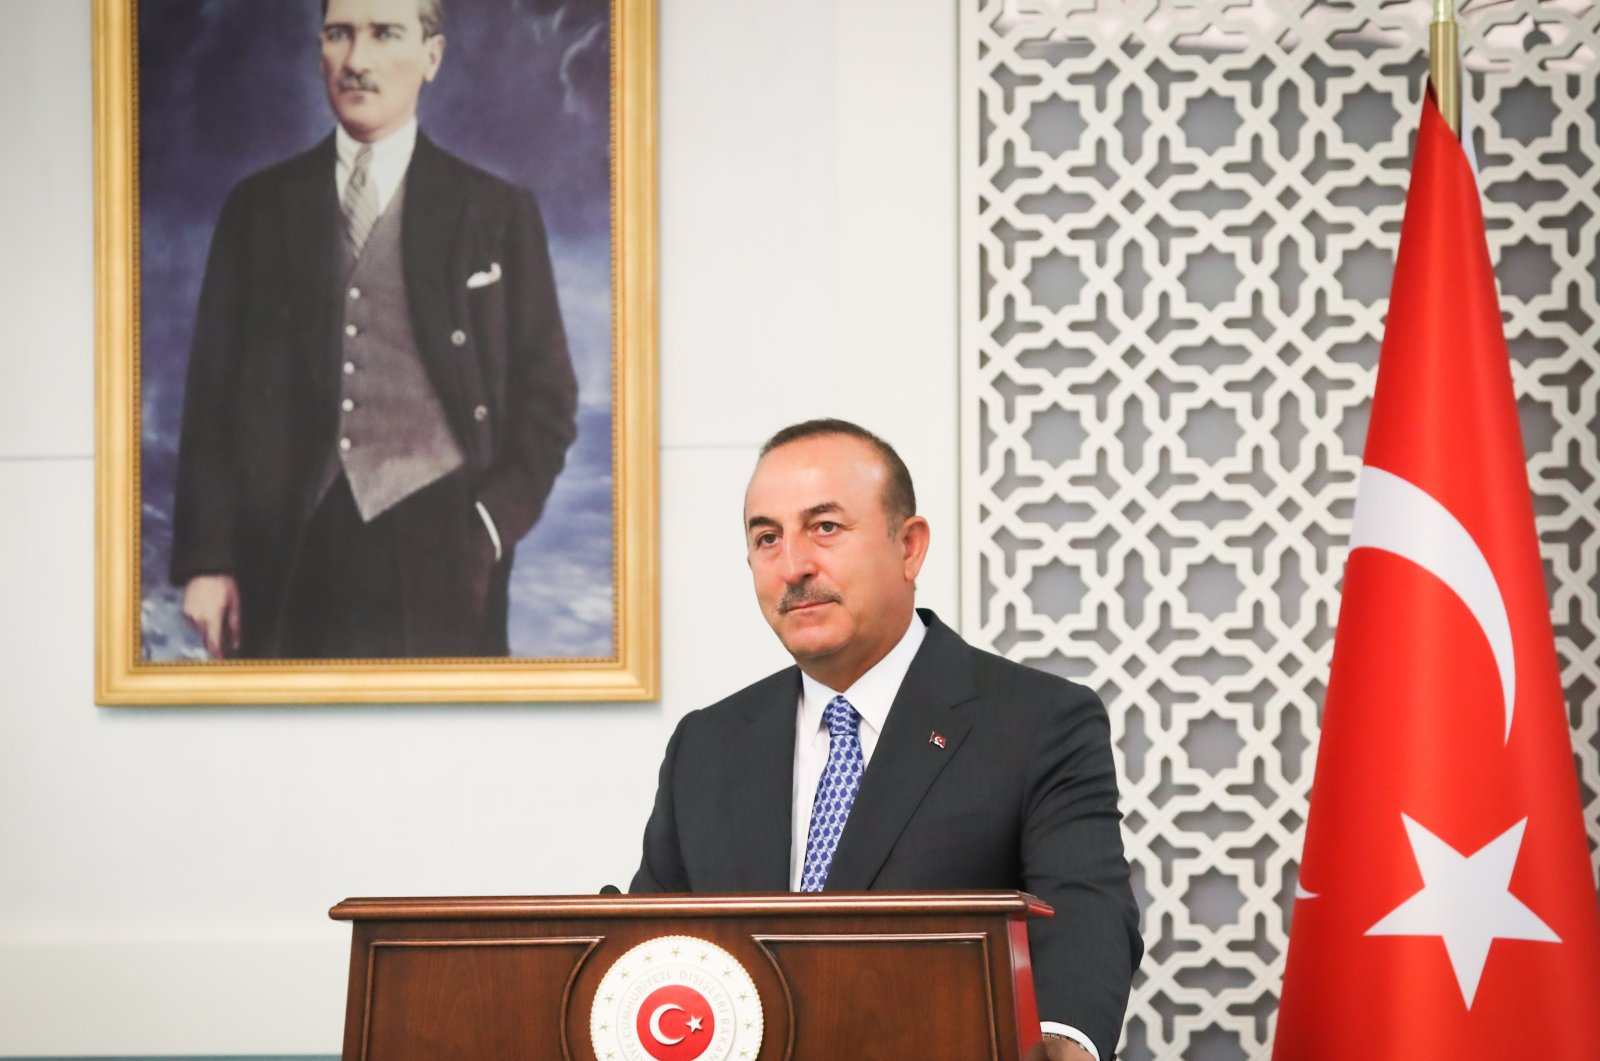 Turkish Foreign Minister Mevlüt Çavuşoğlu attends a press conference following a meeting with his Maltese counterpart Evarist Bartolo in Ankara Turkey, Tuesday, July 14, 2020.(Cem Özdel/Turkish Foreign Ministry via AA)